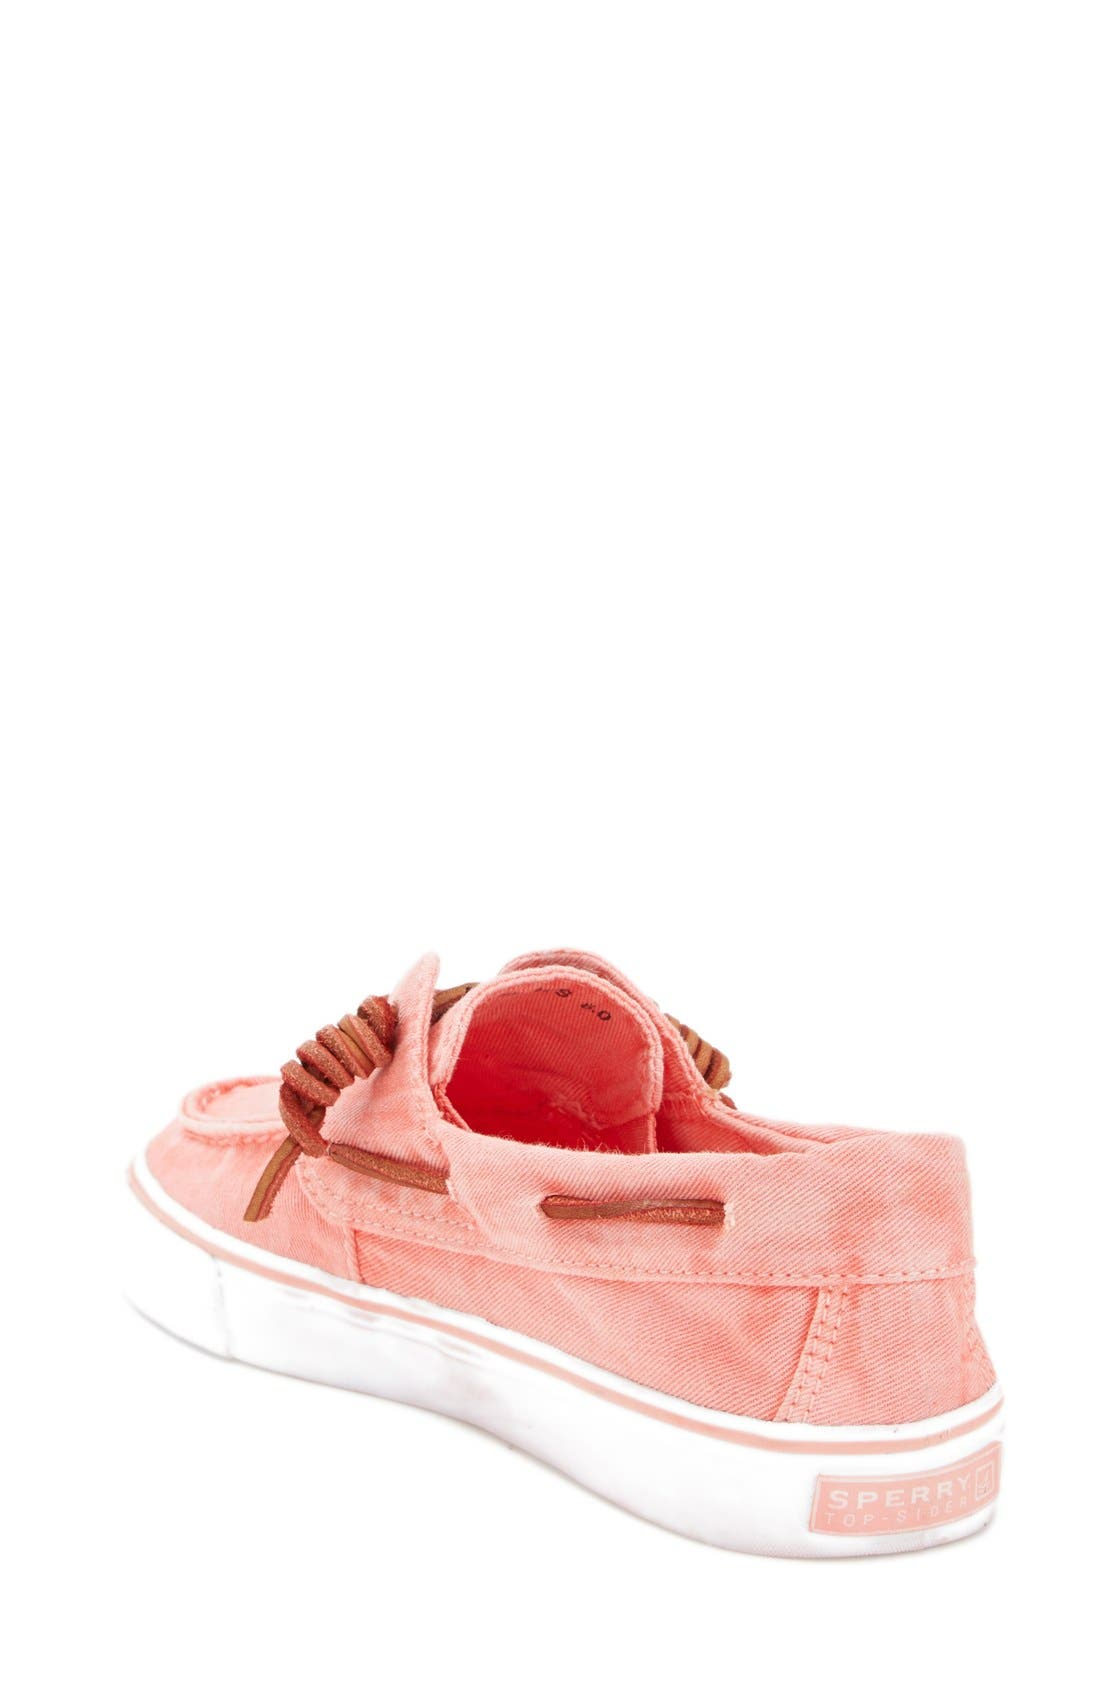 Top-Sider<sup>®</sup> 'Bahama' Sequined Boat Shoe,                             Alternate thumbnail 84, color,